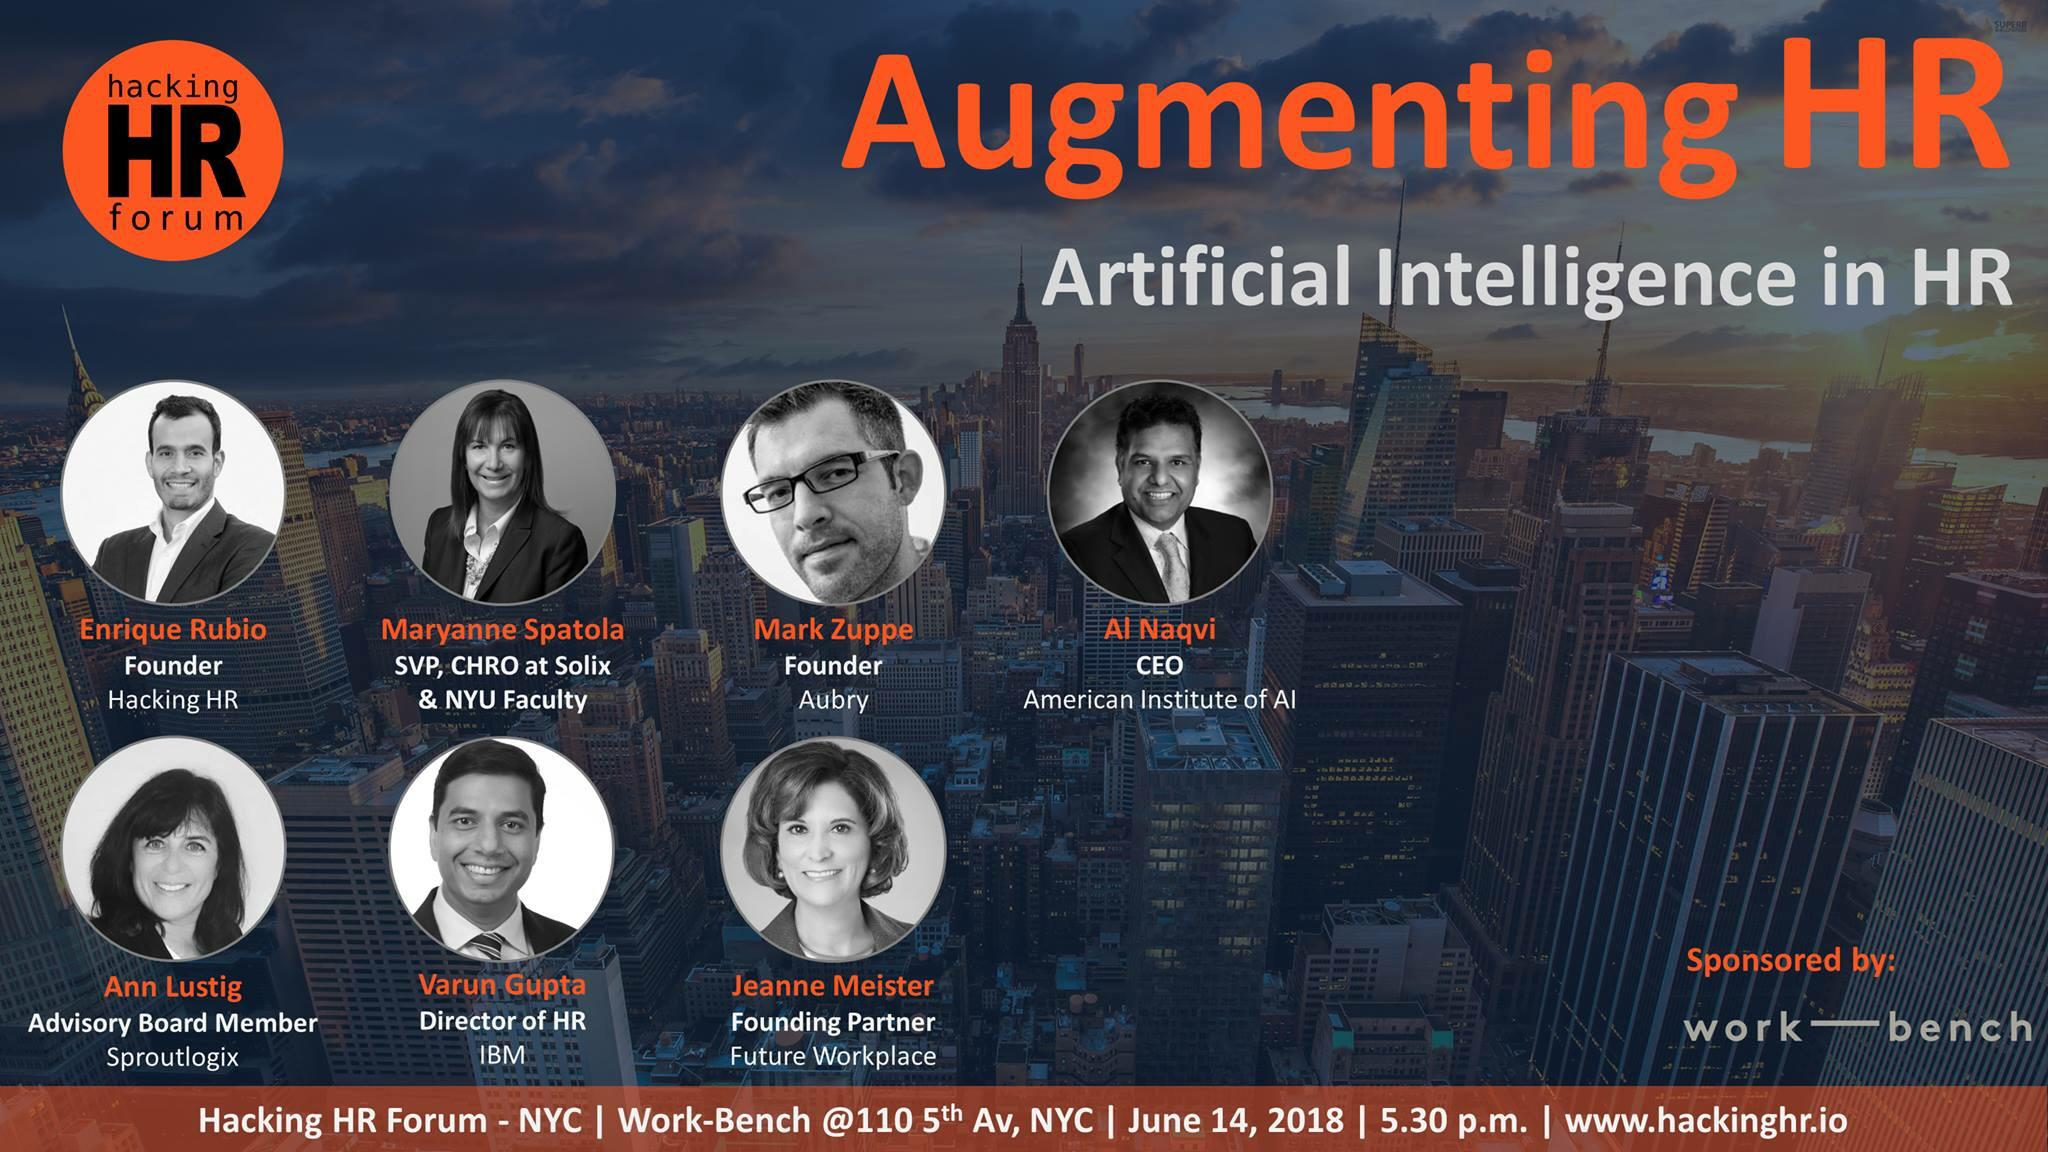 Augmenting HR: Artificial Intelligence in HR